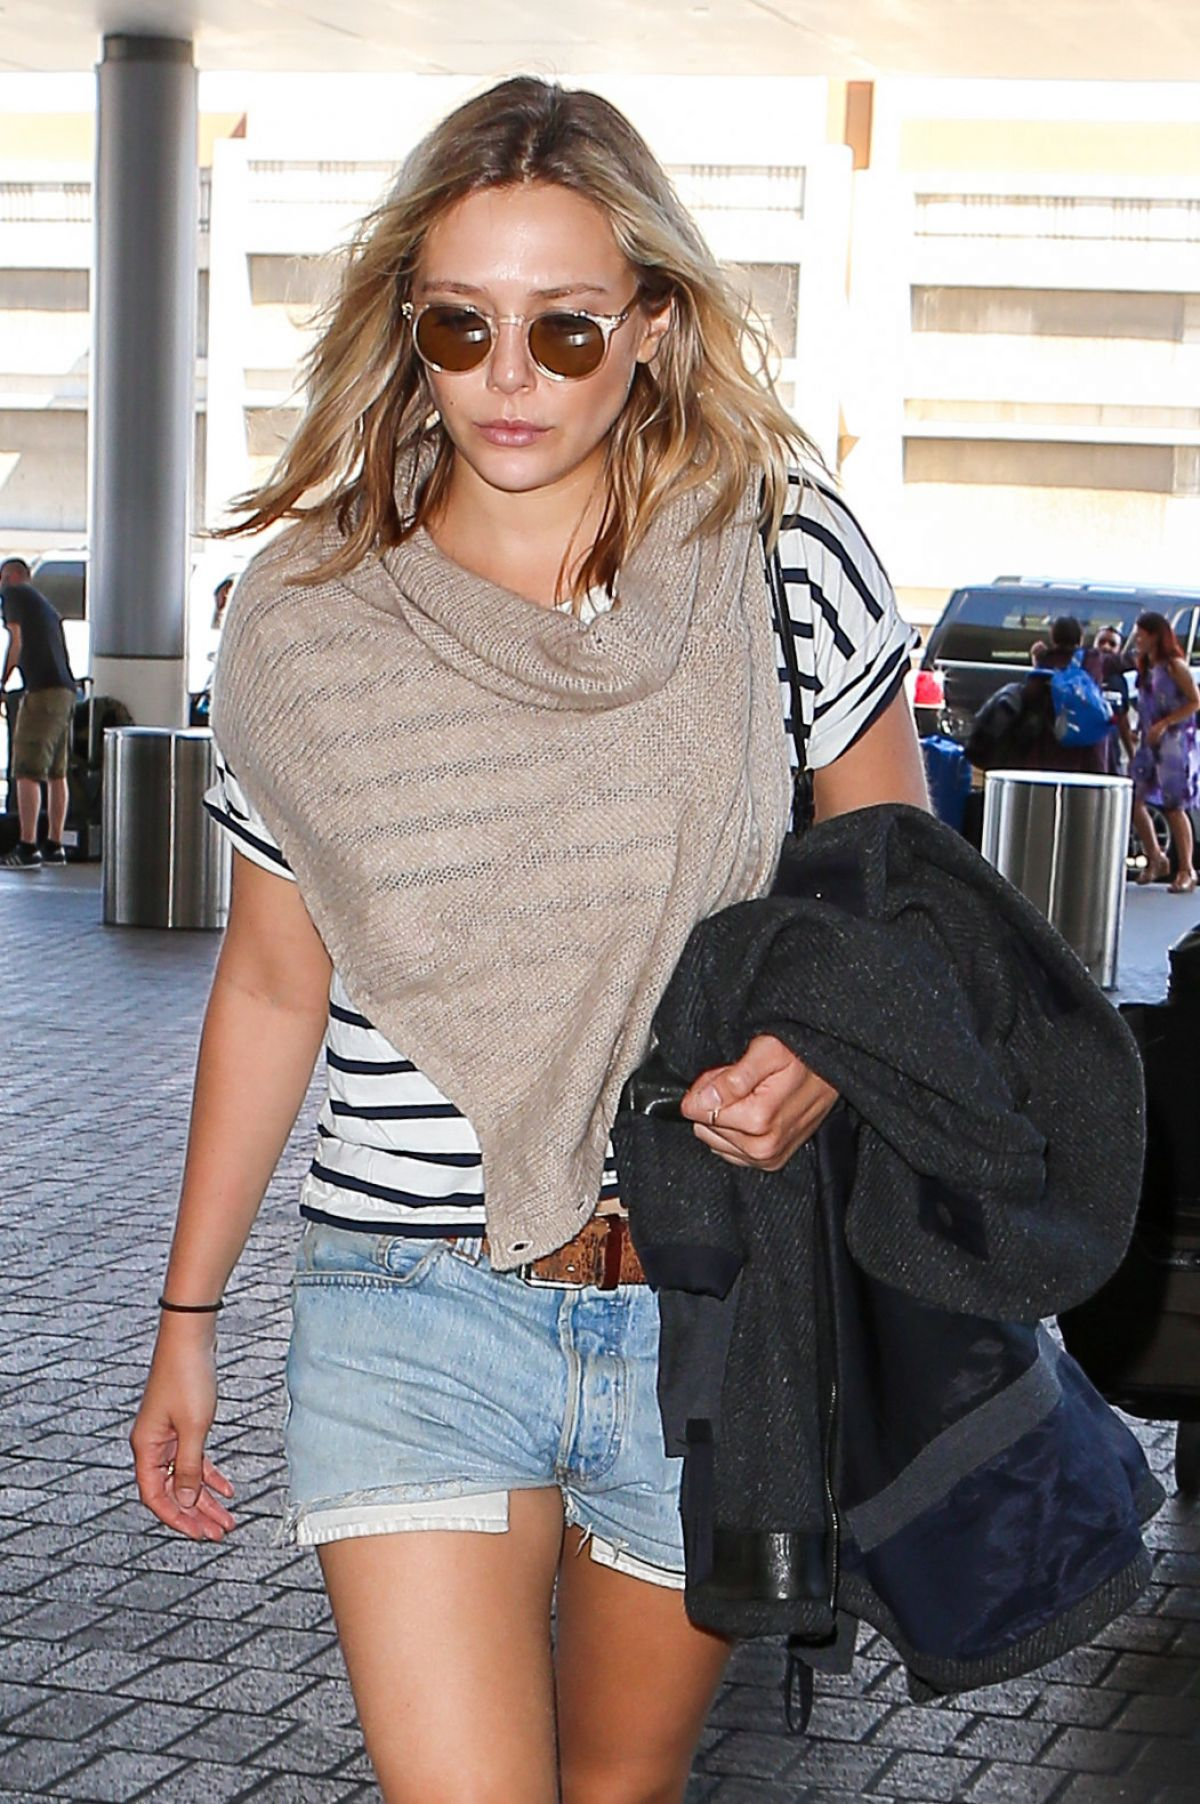 ELIZABETH OLSEN at LAX Airport in Los Angeles 09/28/2015